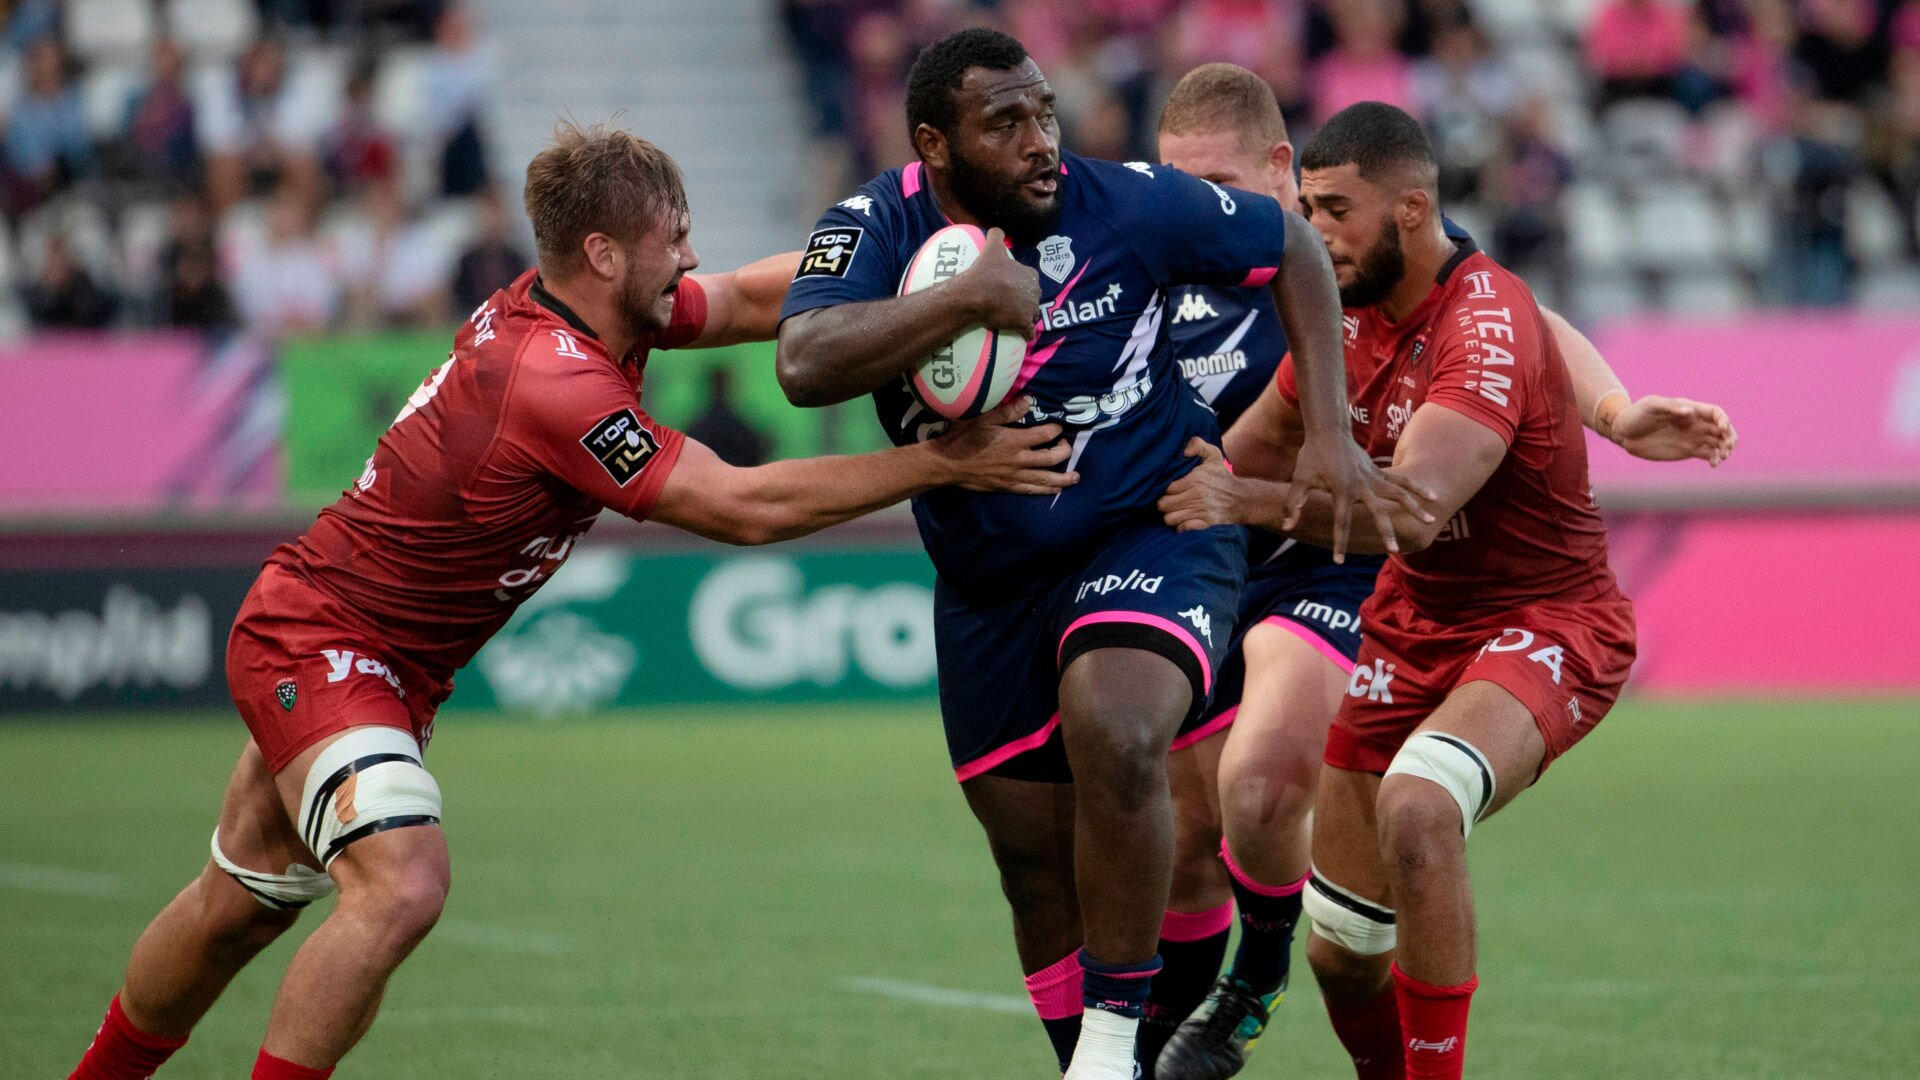 'Unacceptable' - 130kg Stade Francais prop blasted for moment of madness